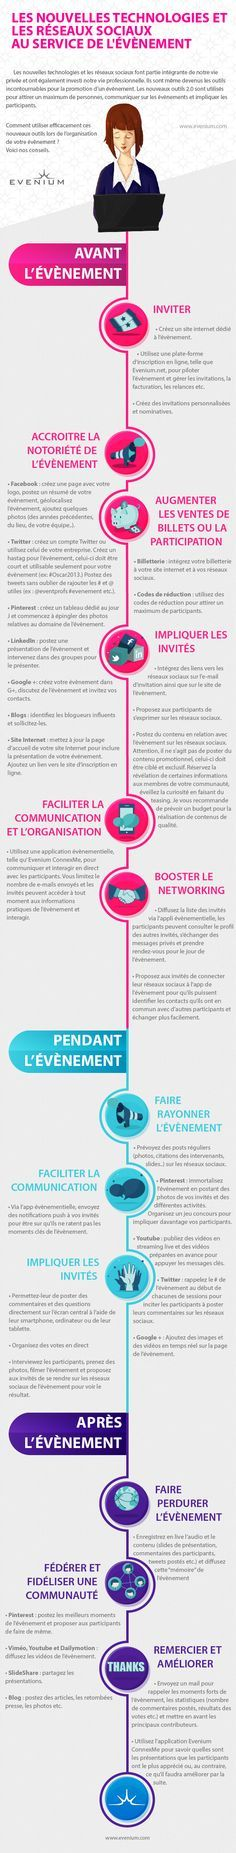 Comment utiliser efficacement les nouveaux outils et le #socialmedia pour vos événements ? http://www.1min30.com/social-media-marketing/community-management-et-evenementiel-en-infographie-8372?utm_content=buffer1292a&utm_medium=social&utm_source=pinterest.com&utm_campaign=buffer